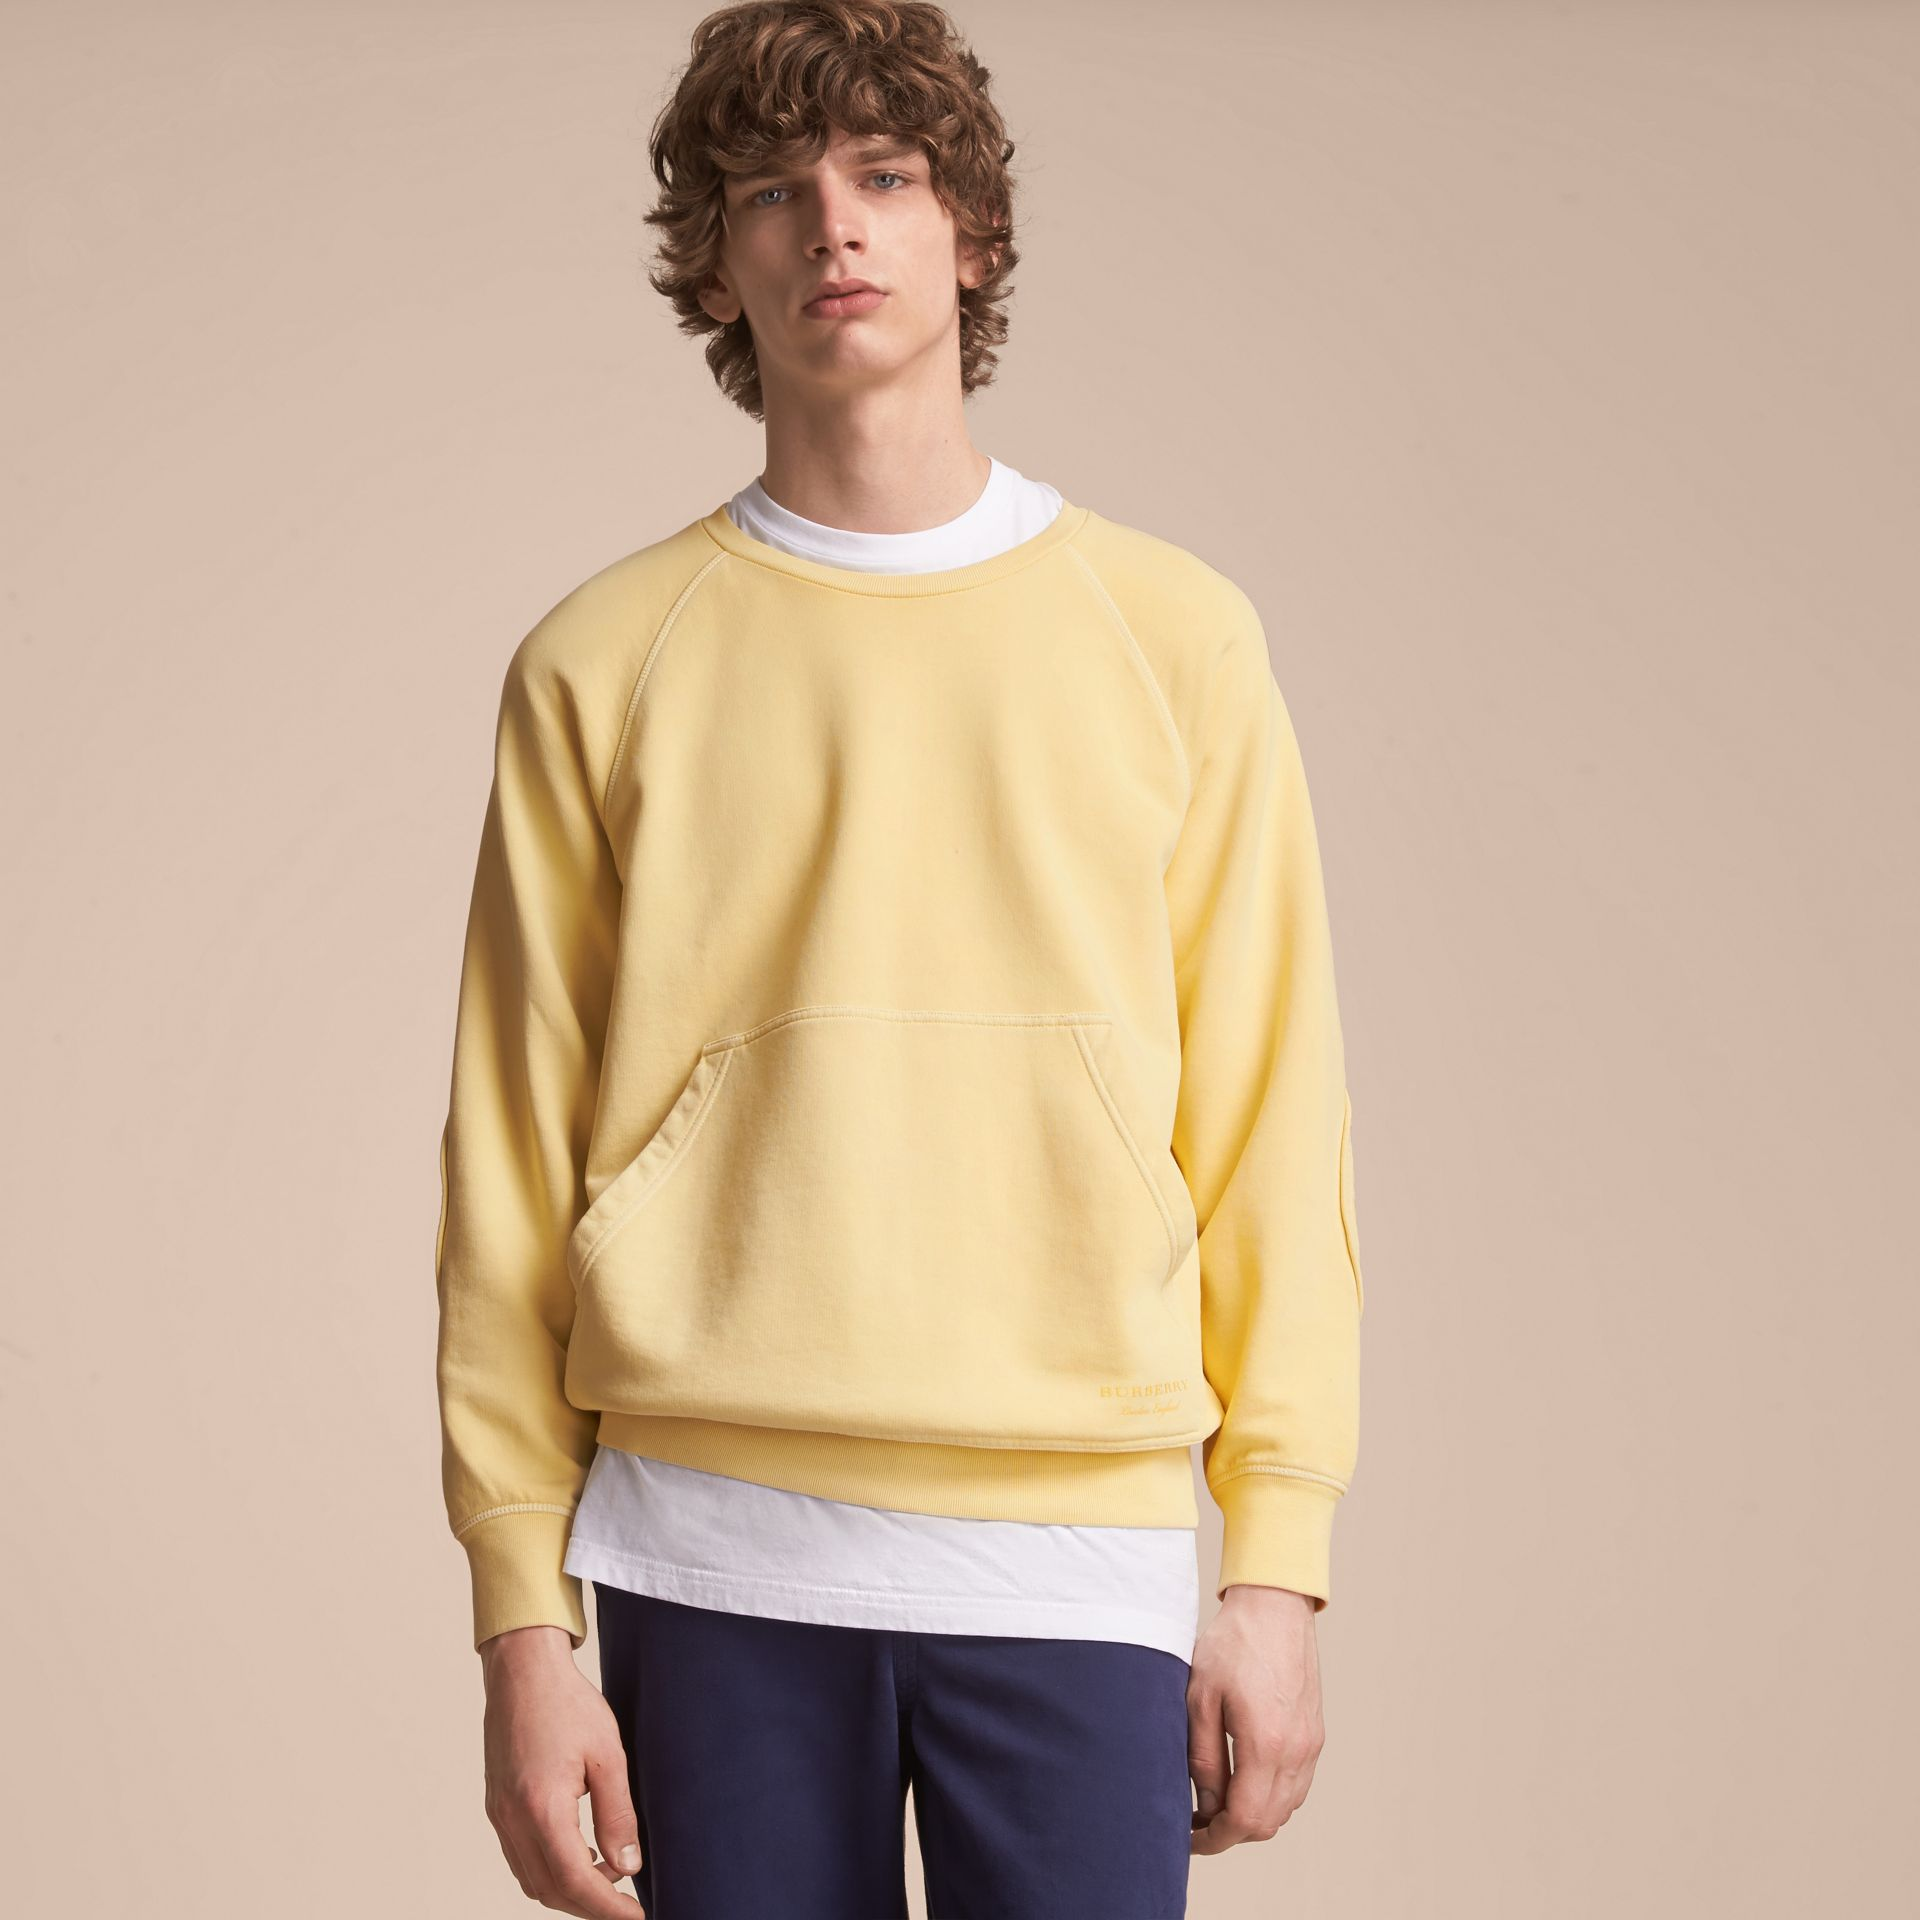 Unisex Pigment-dyed Cotton Oversize Sweatshirt in Pale Yellow - Men | Burberry Hong Kong - gallery image 6